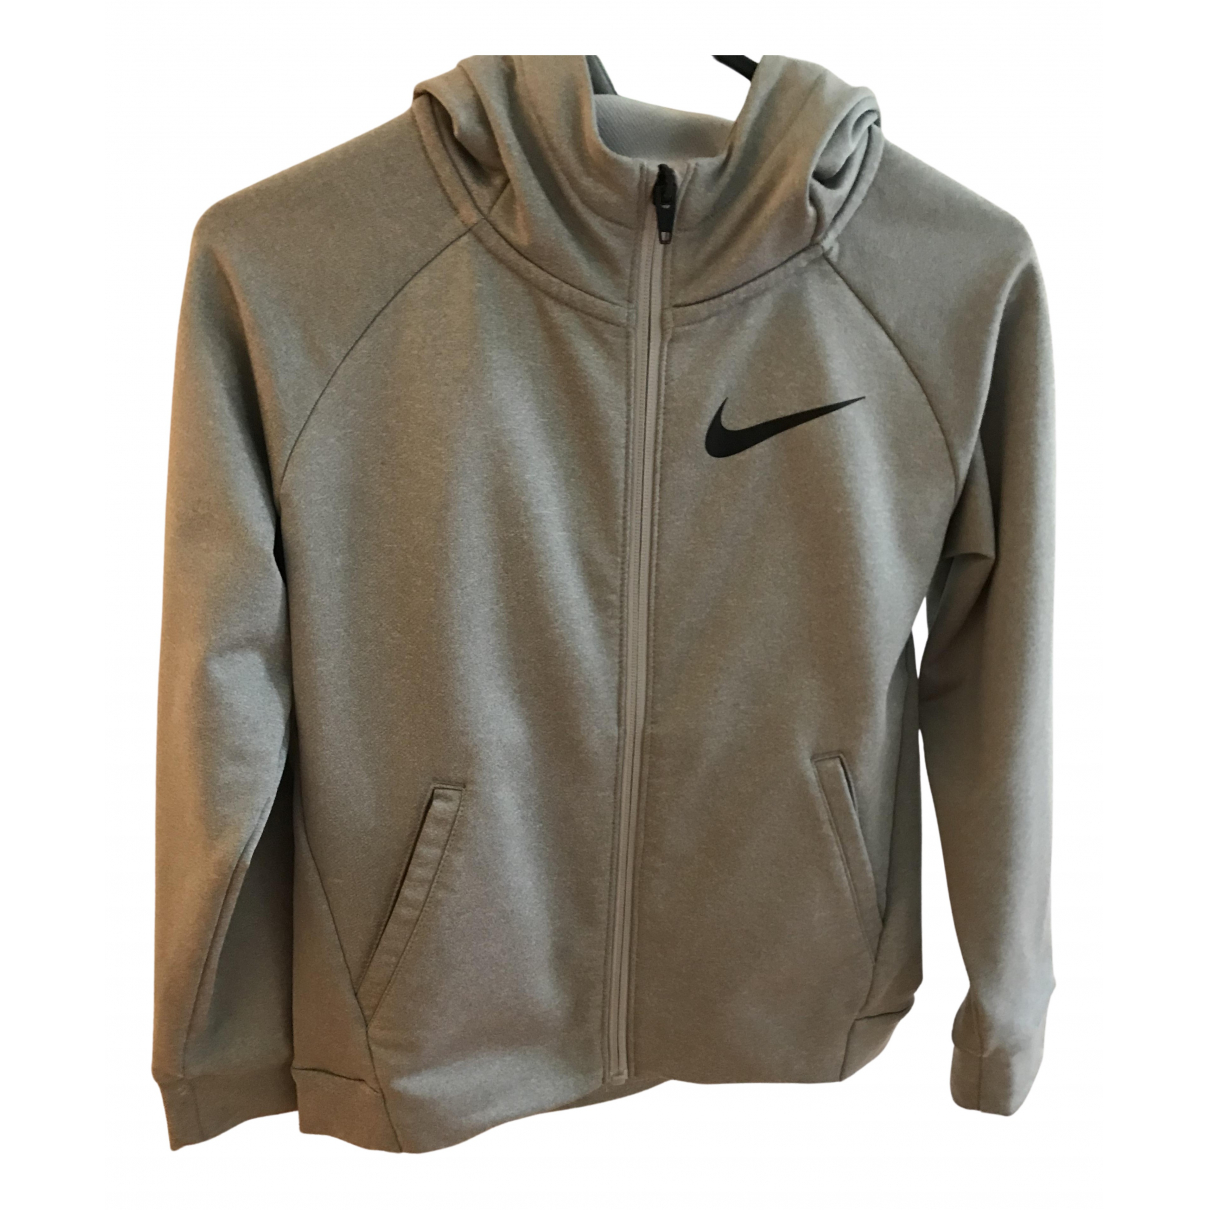 Nike N Grey Cotton Knitwear for Kids 6 years - up to 114cm FR